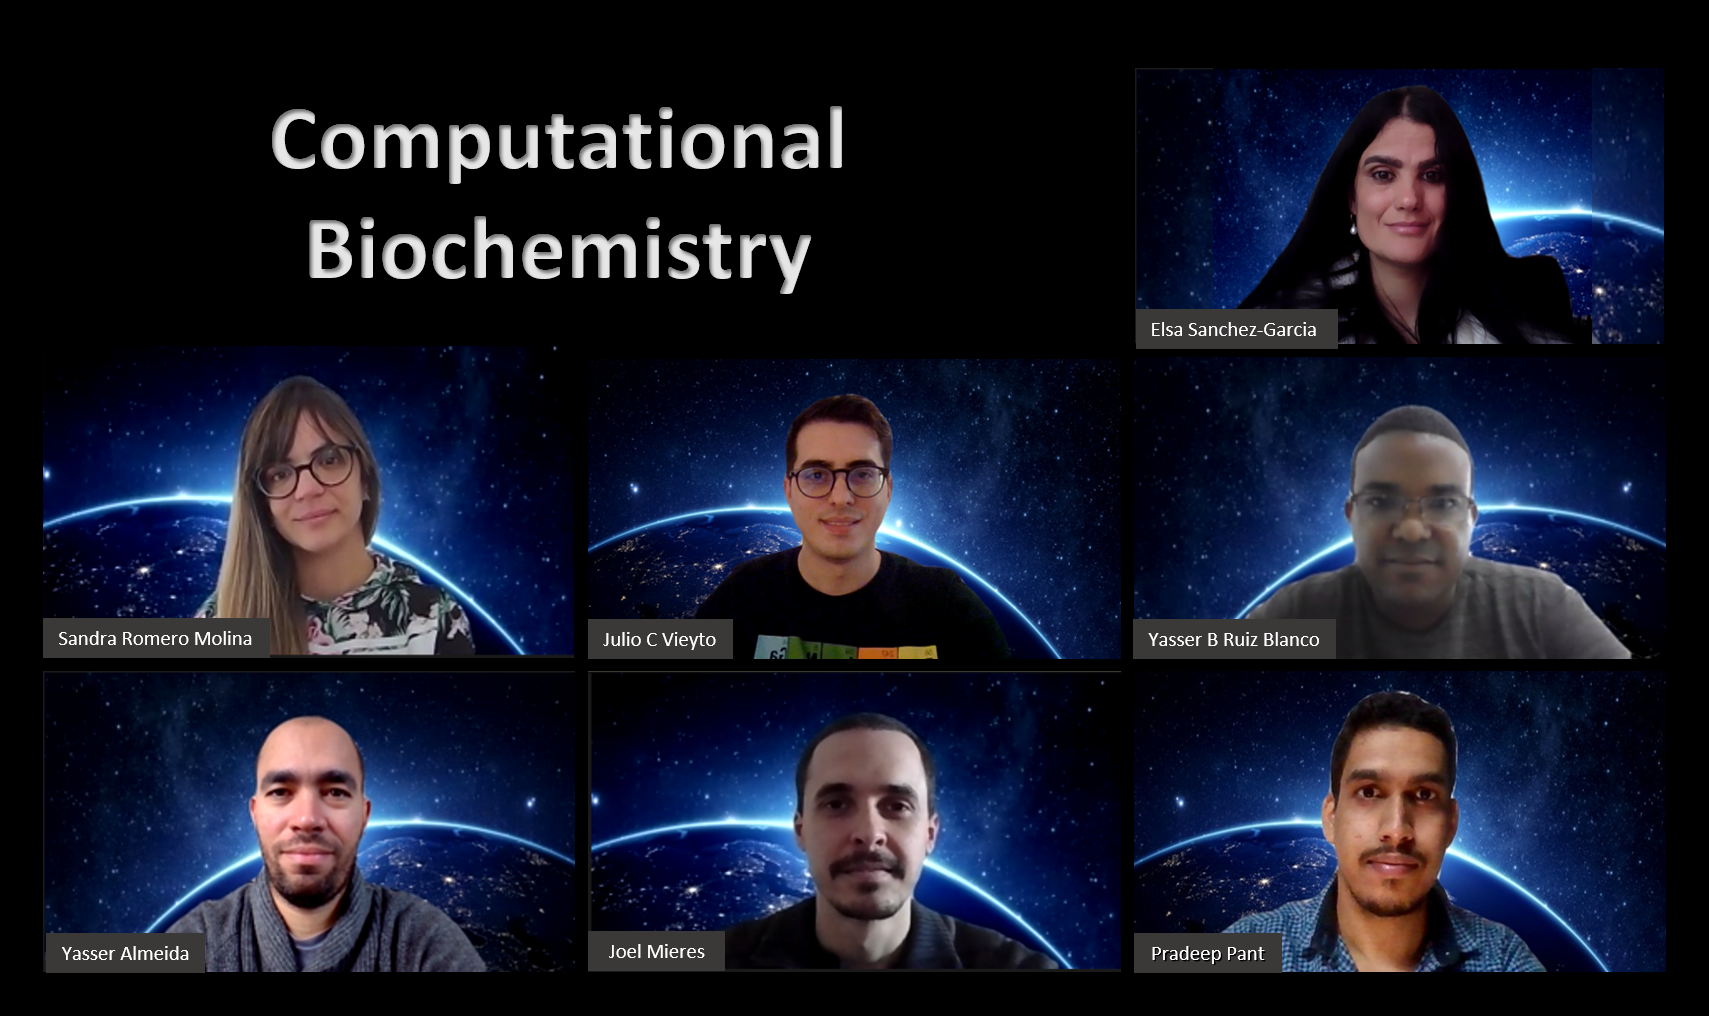 Group image of the department of Computational Biochemistry